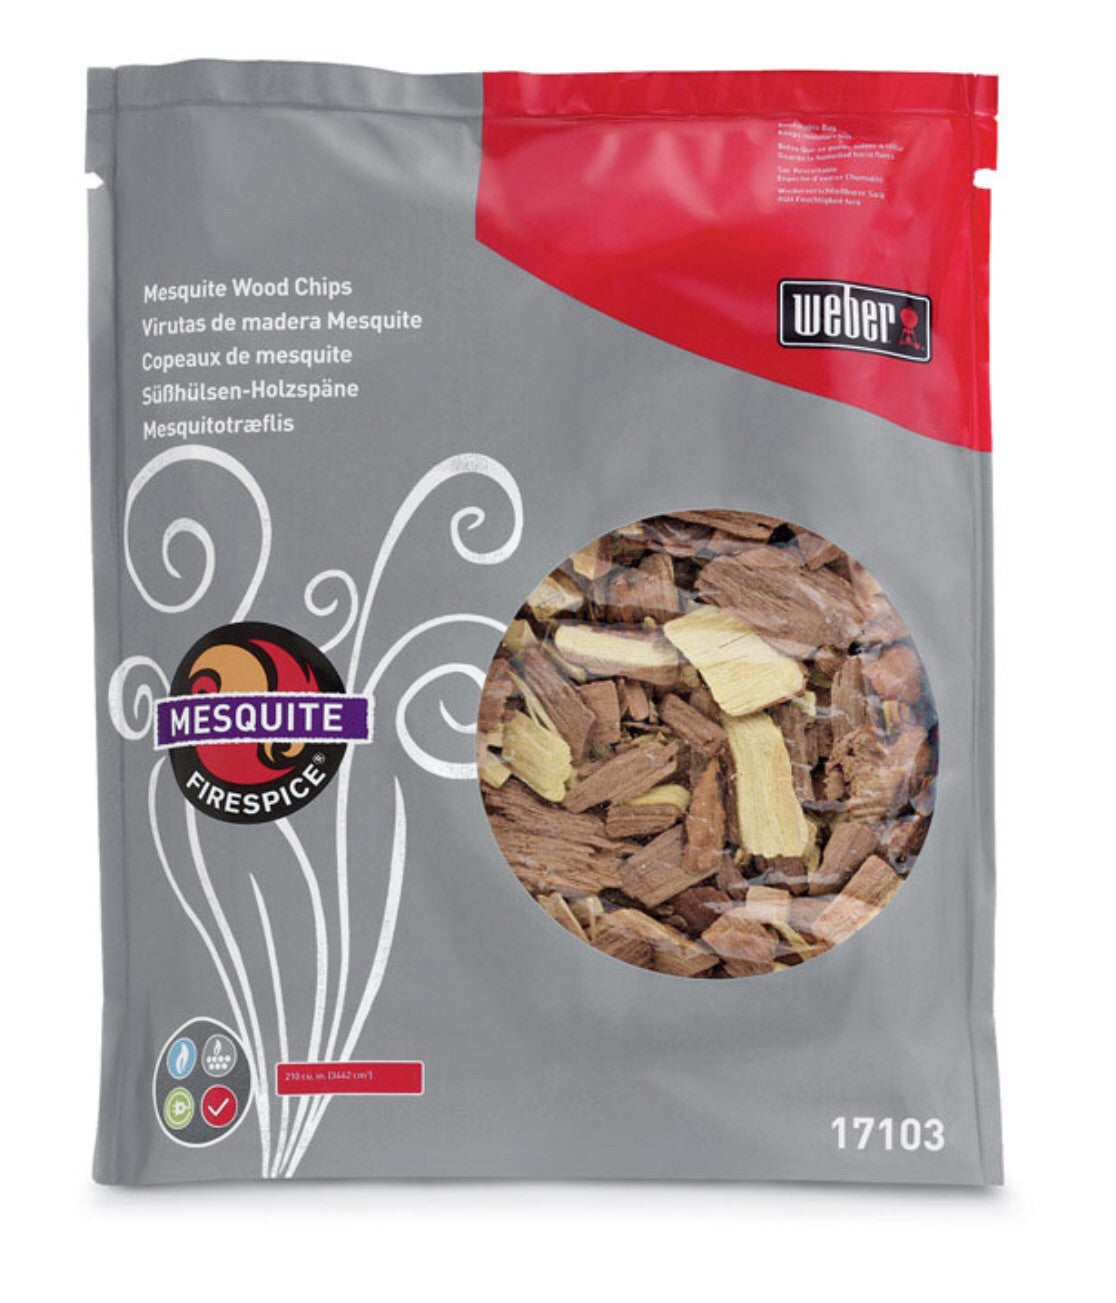 Weber Mesquite Wood Smoking Chips 3lb. 8265498